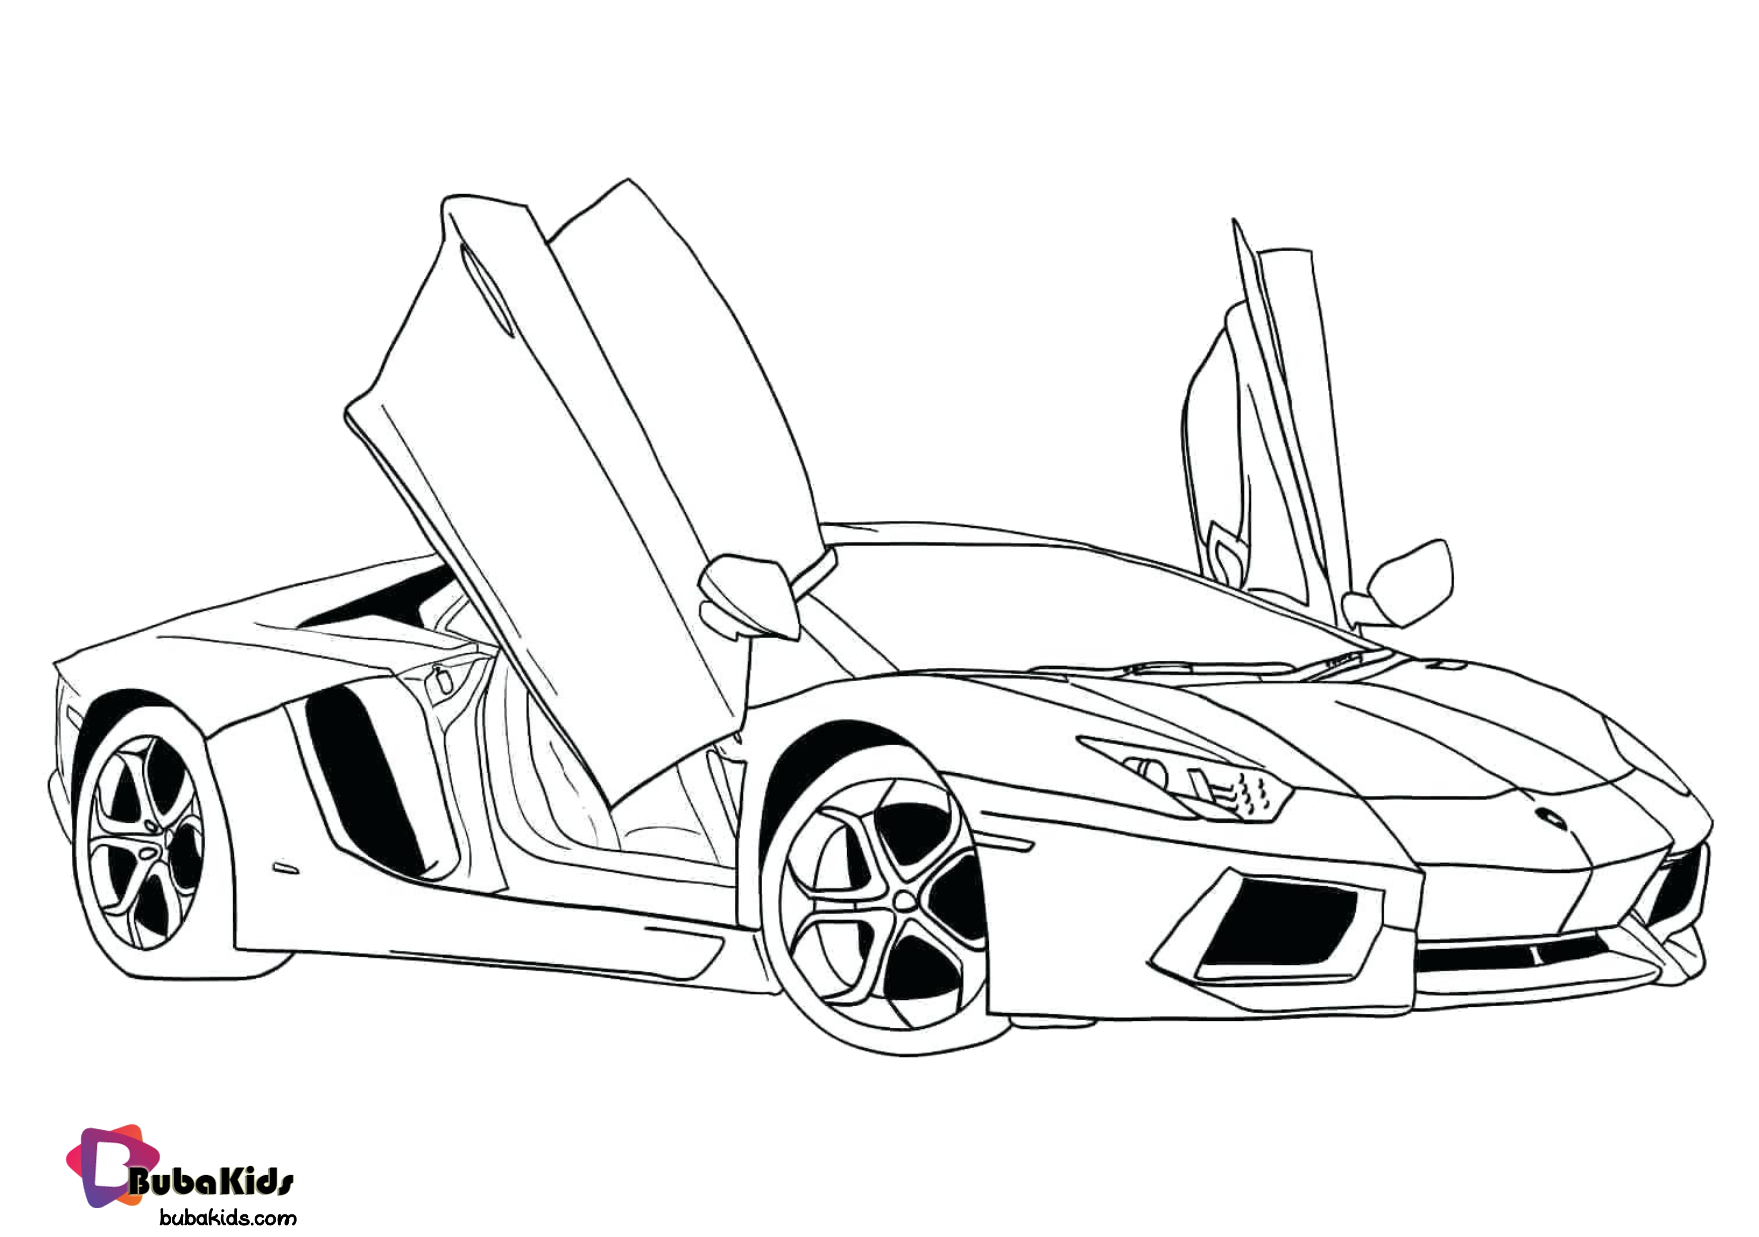 Free download super car coloring pages for kids Wallpaper